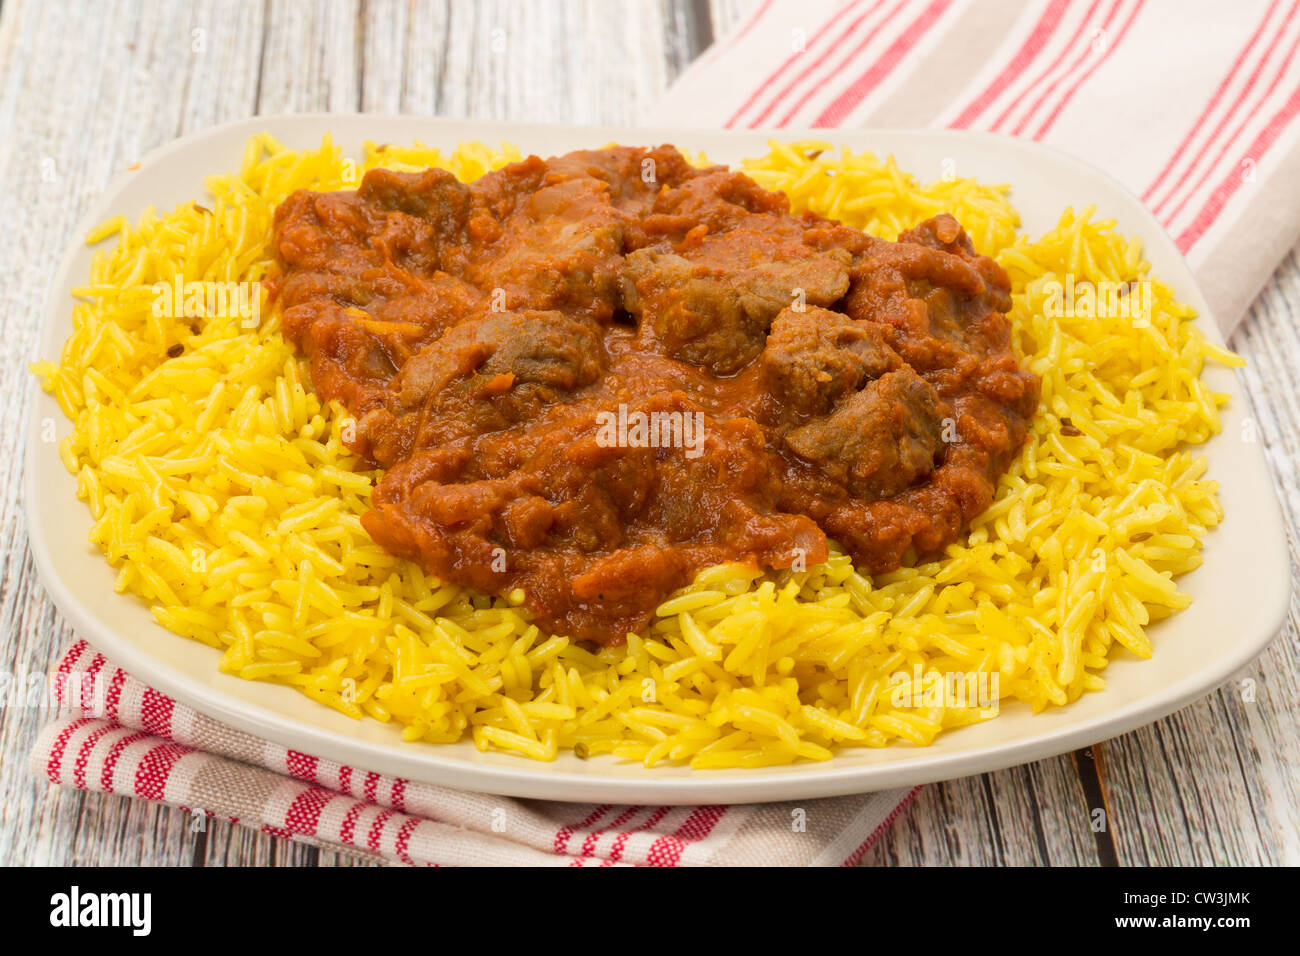 Indian meal of lamb rogan josh served with fragrant pilau rice - Studio shot - Stock Image